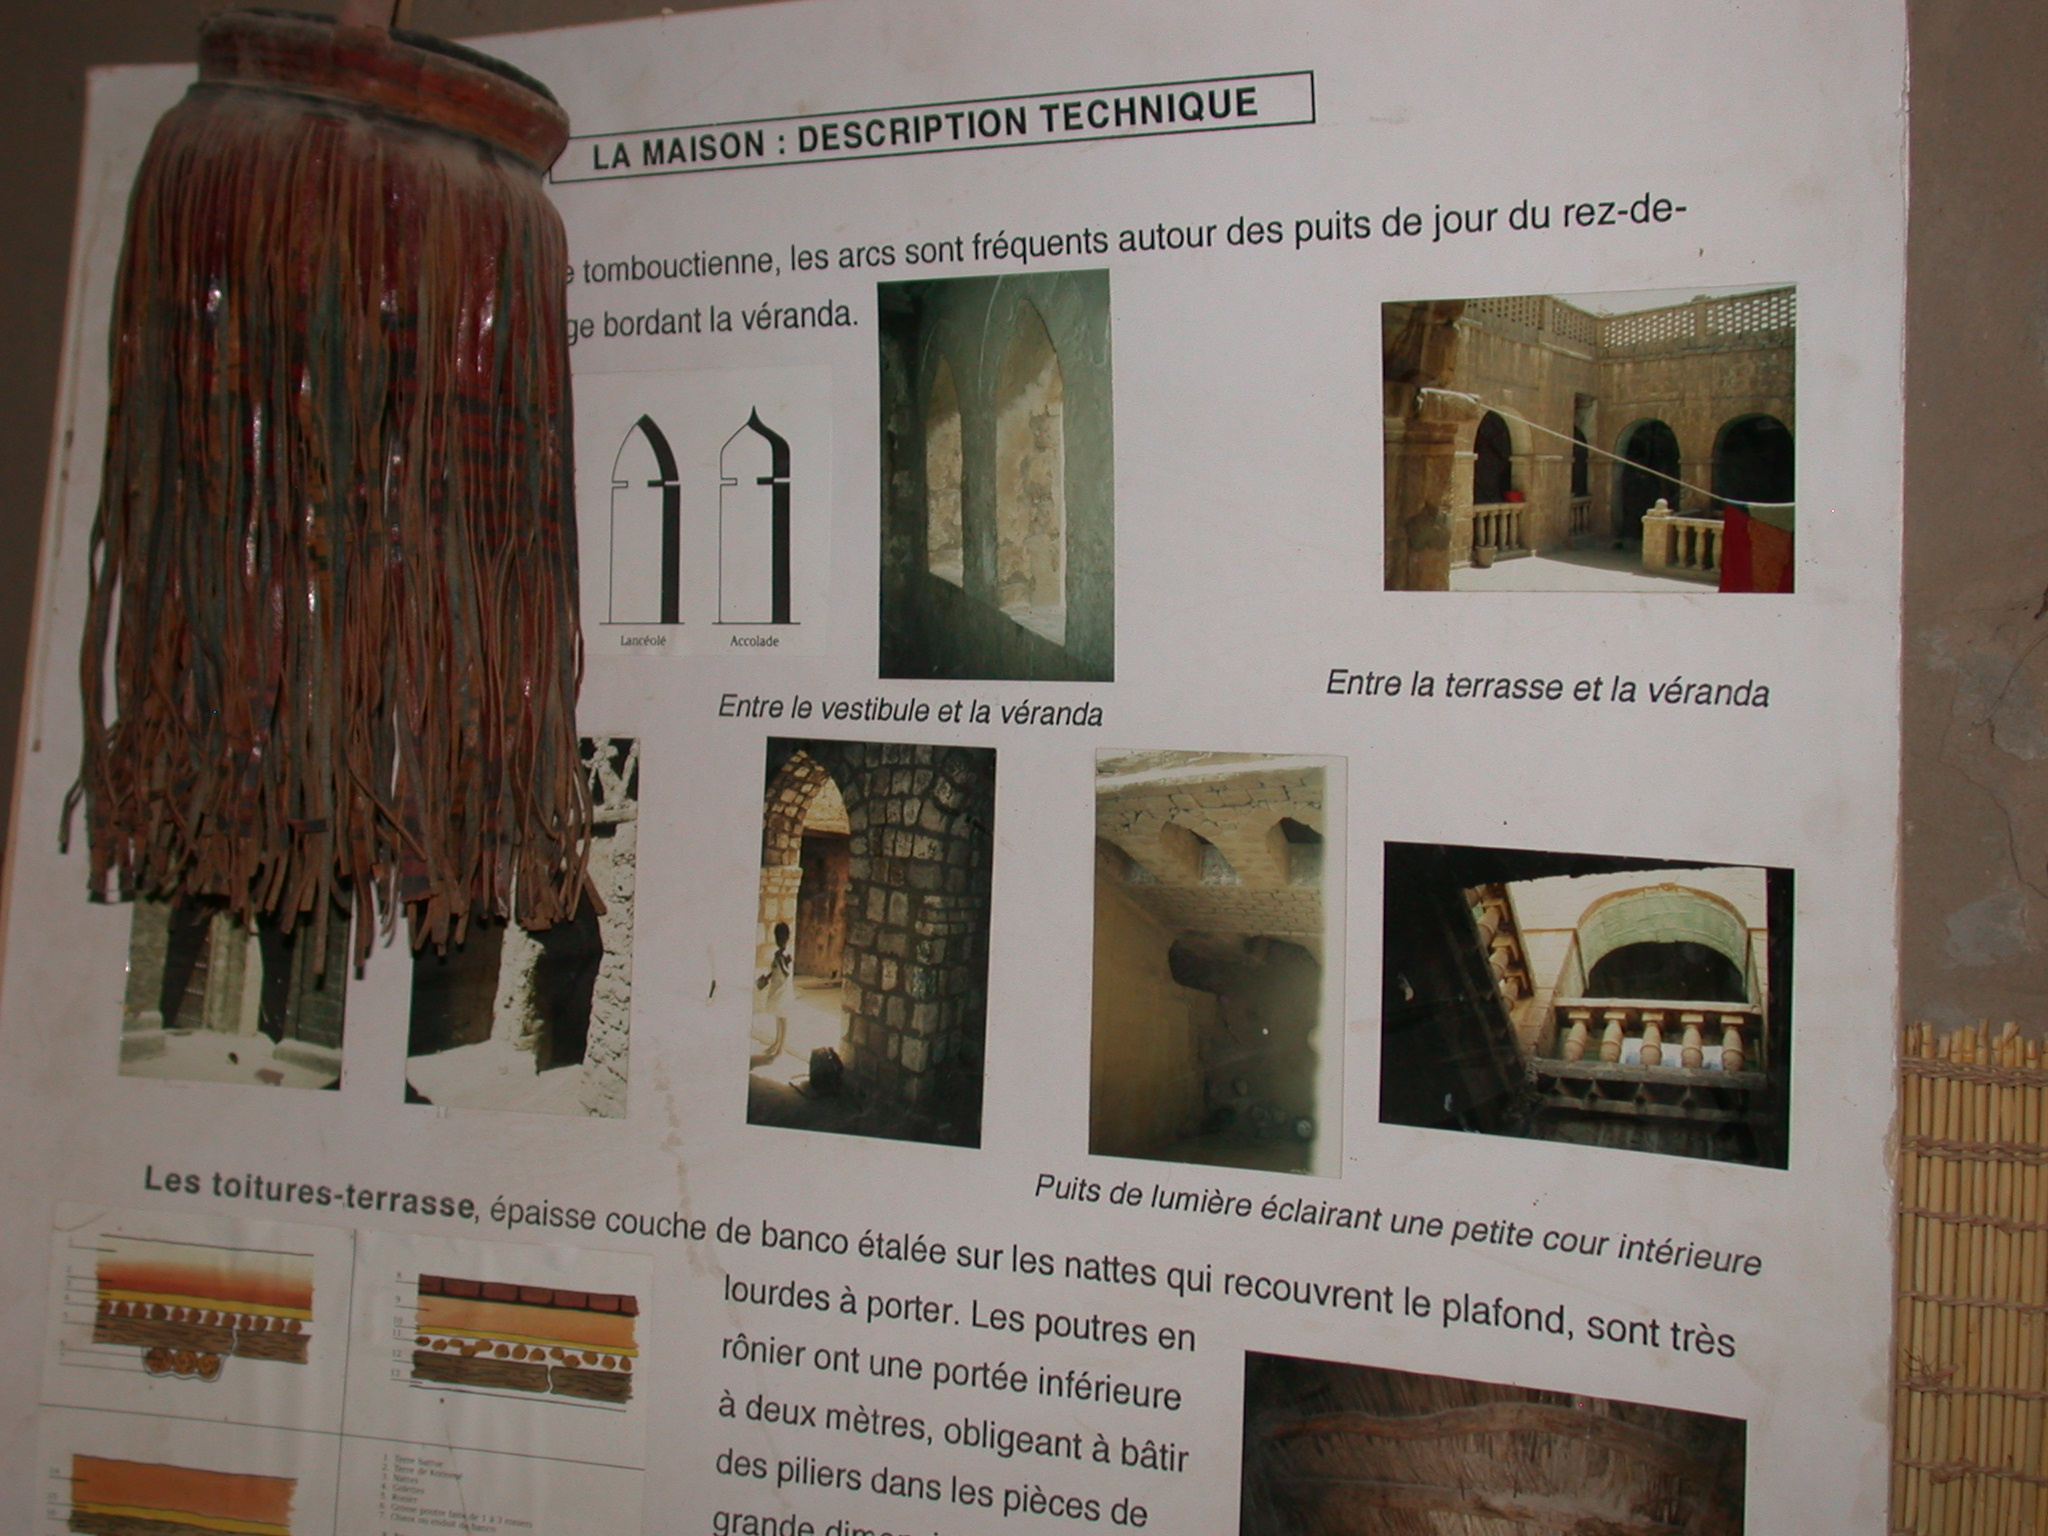 Technical Description of Timbuktu House, Part I, Timbuktu Ethnological Museum, Timbuktu, Mali